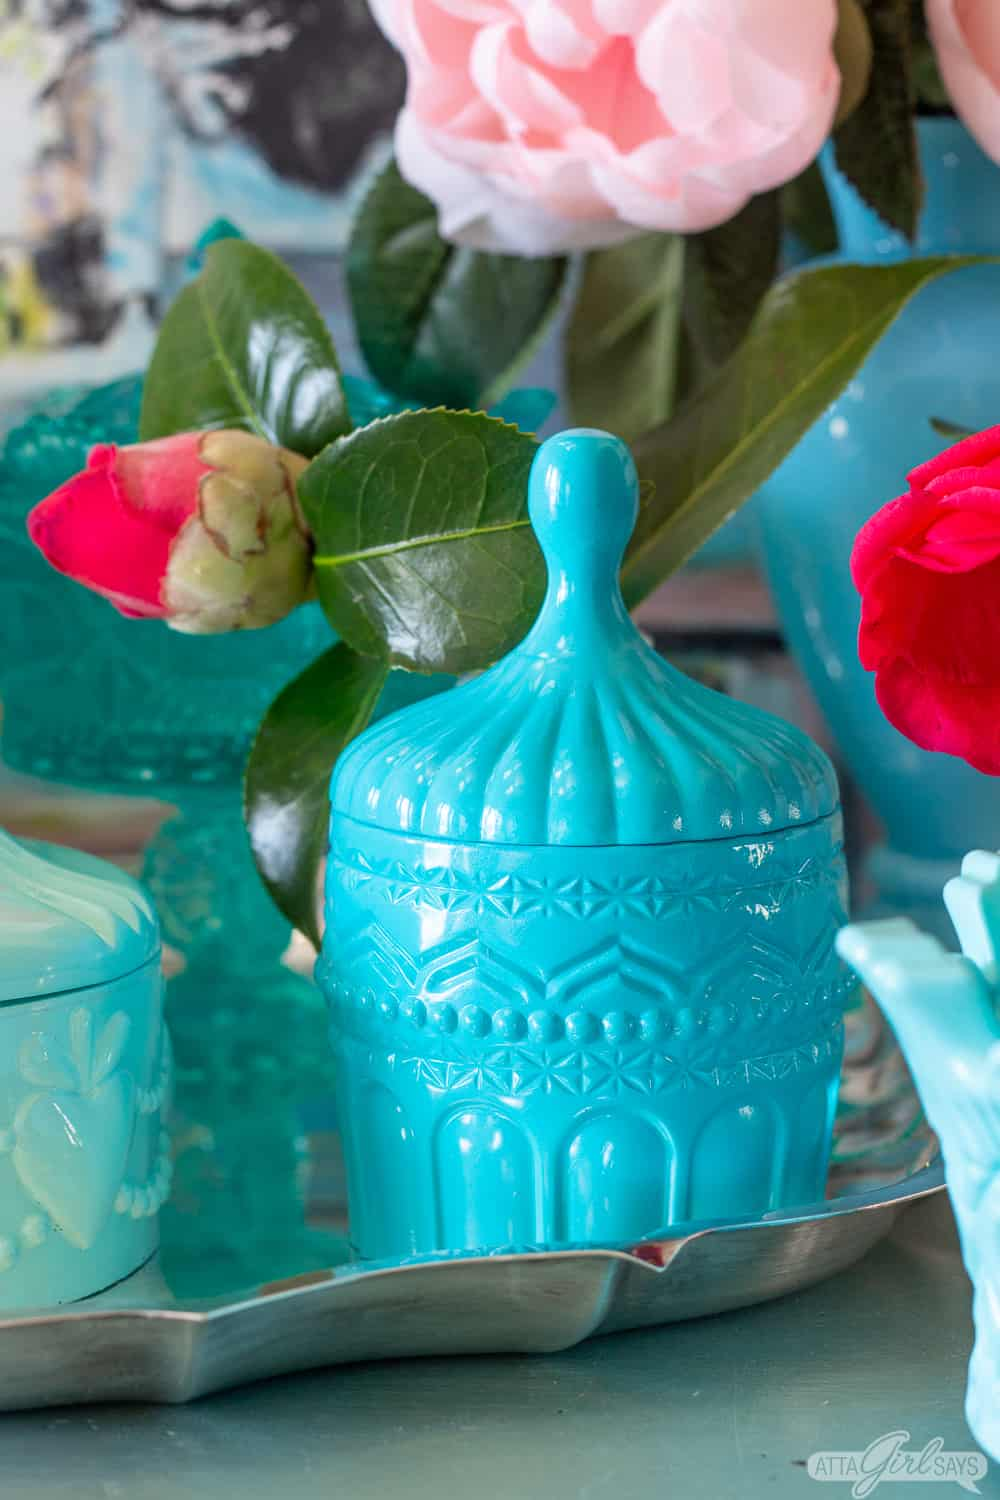 aqua blue resin candy dish inspired by Portieux Vallerysthal